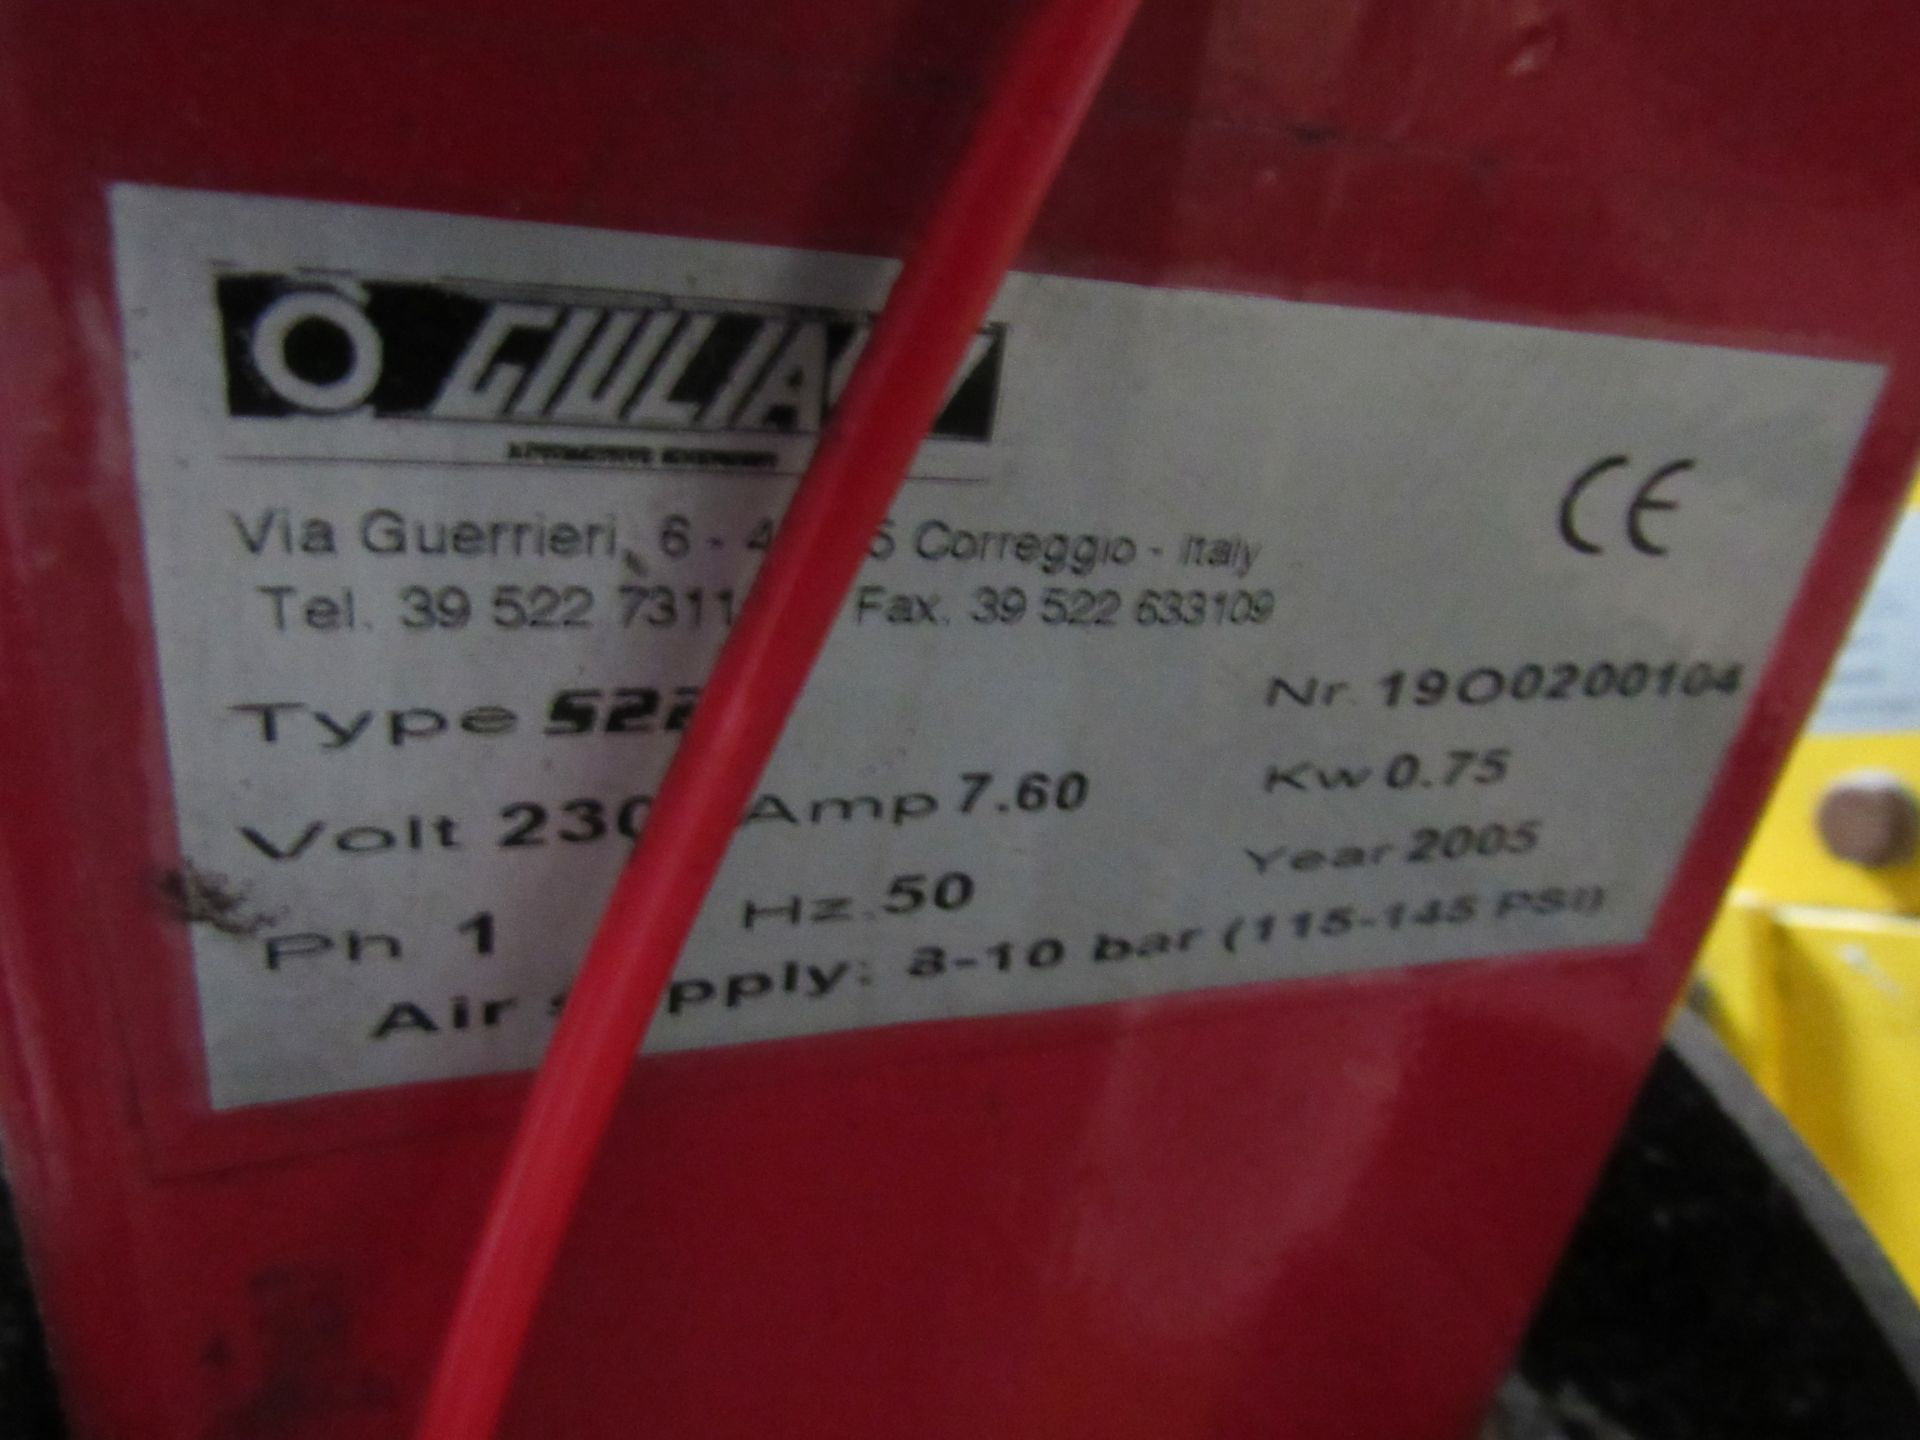 Lot 45 - Guilliano S225 Tyre Changer, Serial Number 1900200104, 2005 (Located at Unit 11)